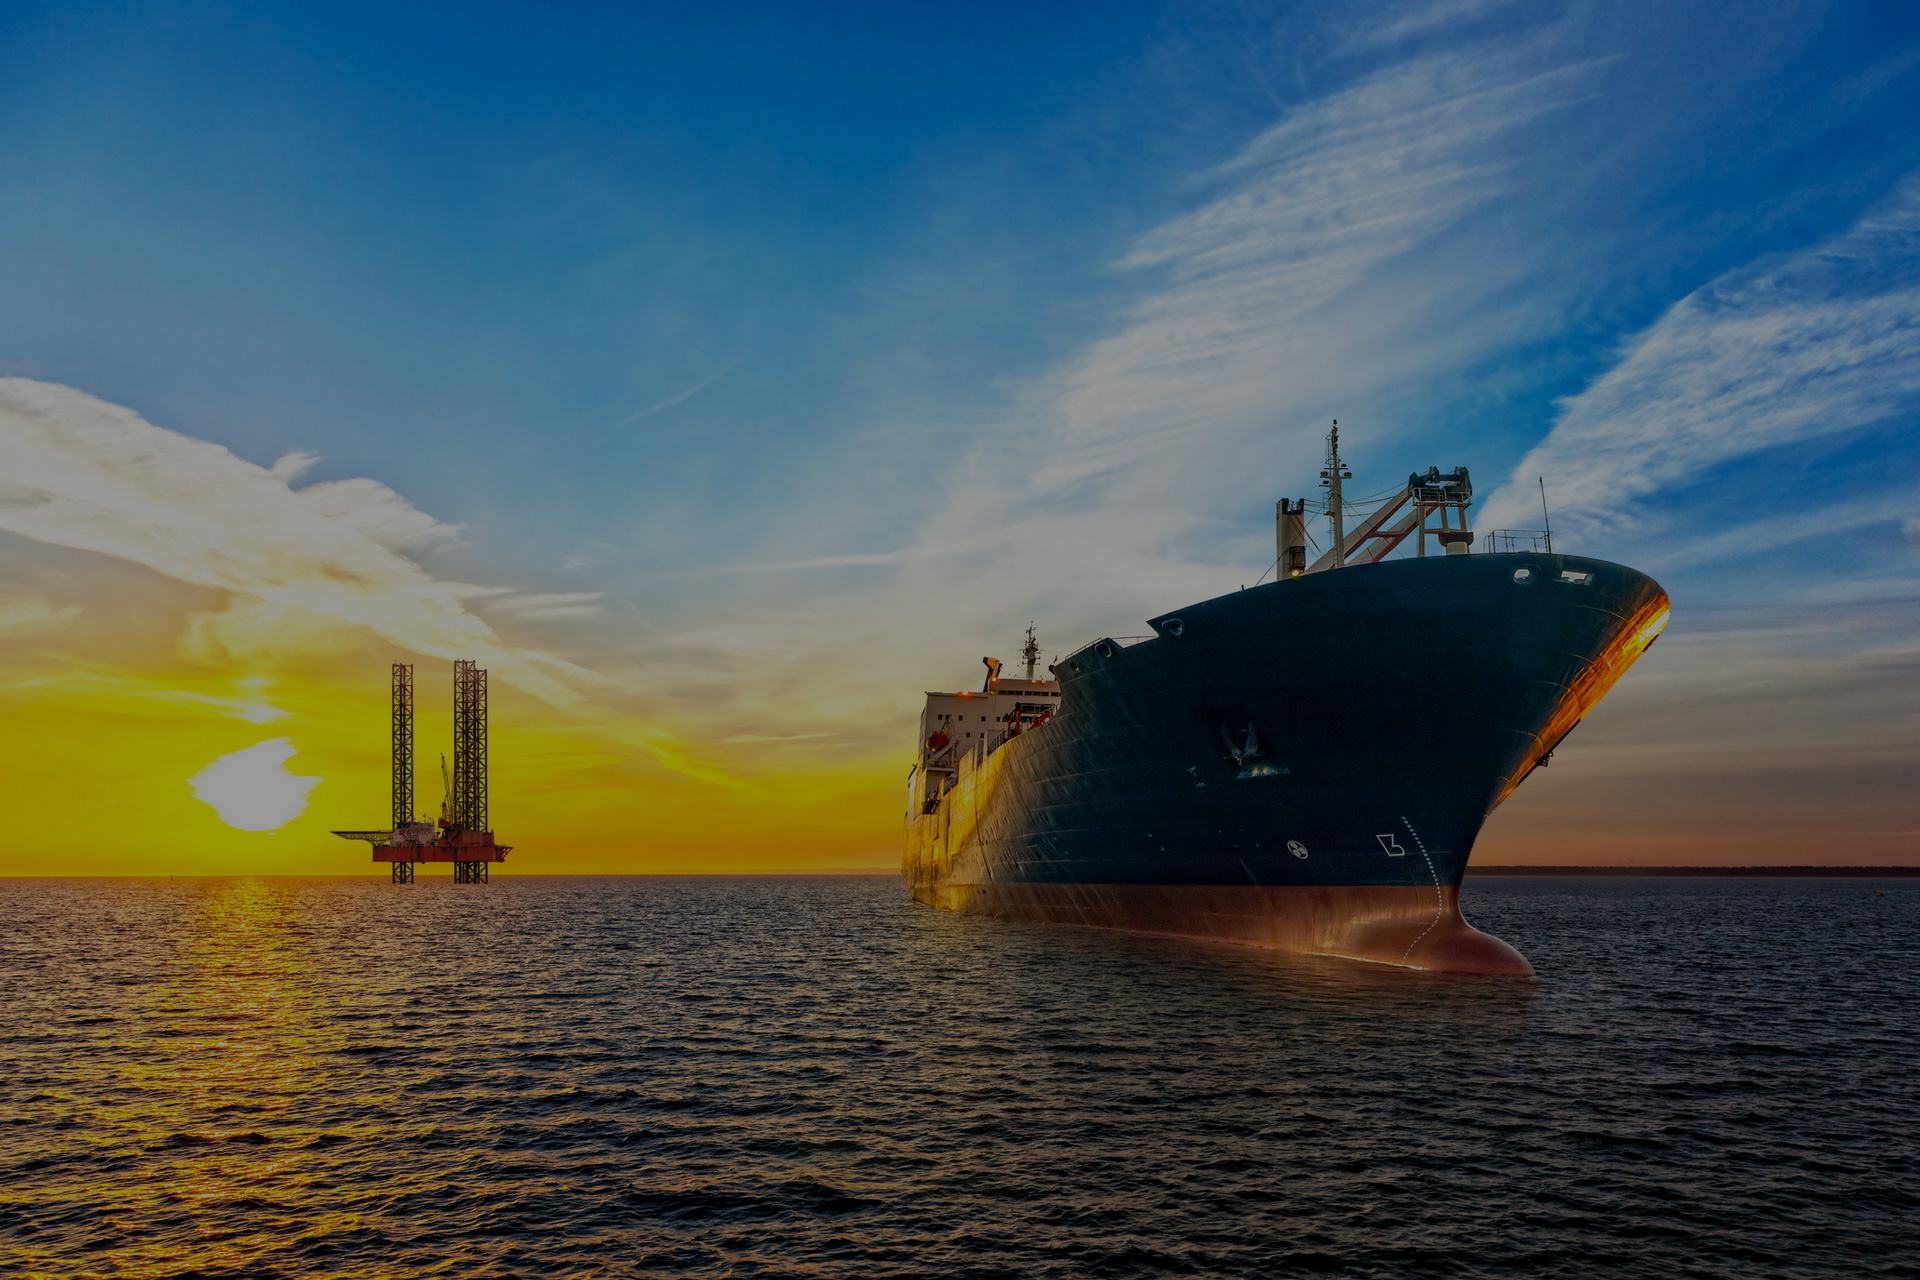 An investment opportunity in Shipping and Energy